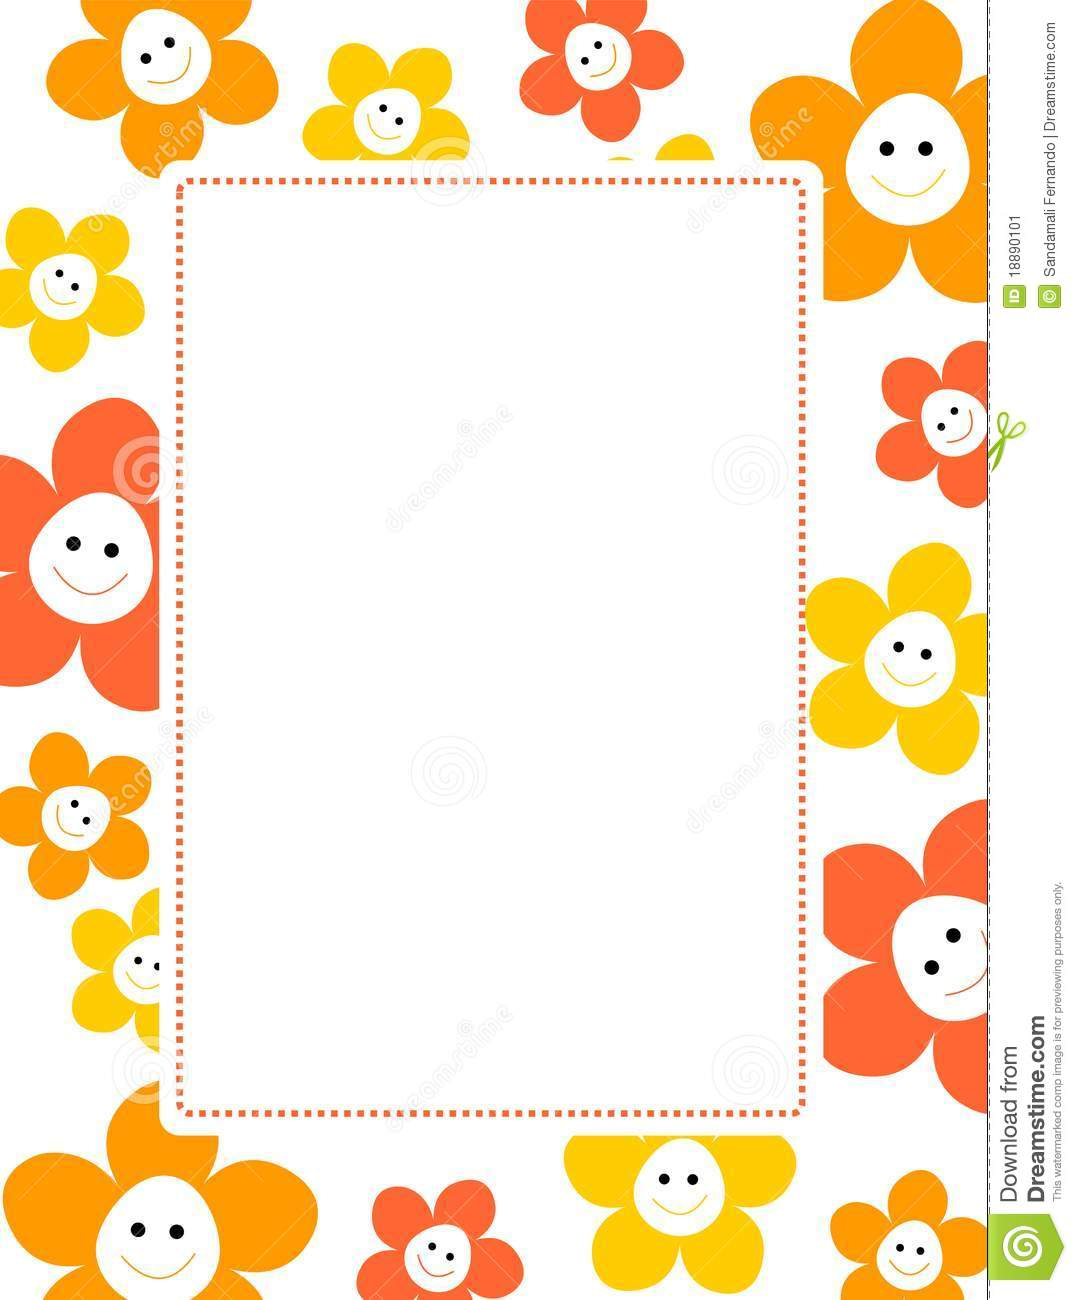 Cute Floral Border Stock Image - Image: 18890101